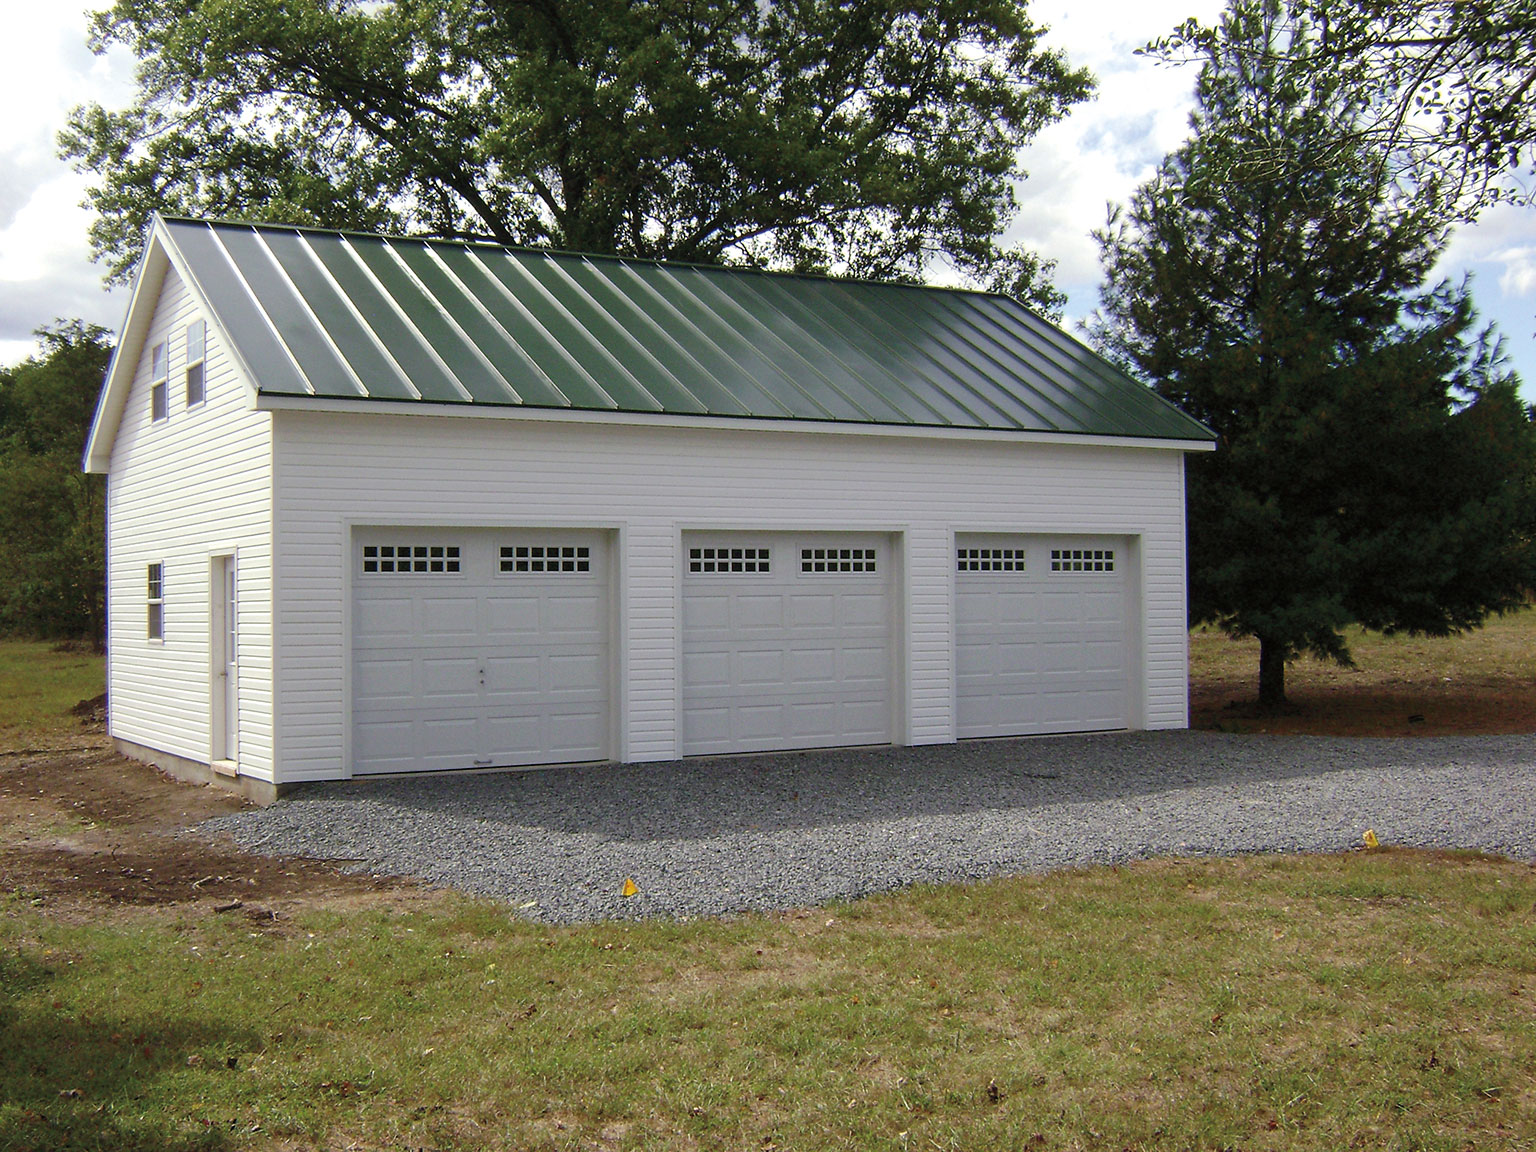 Built on site custom amish garages in oneonta ny amish for 3 bay garage cost